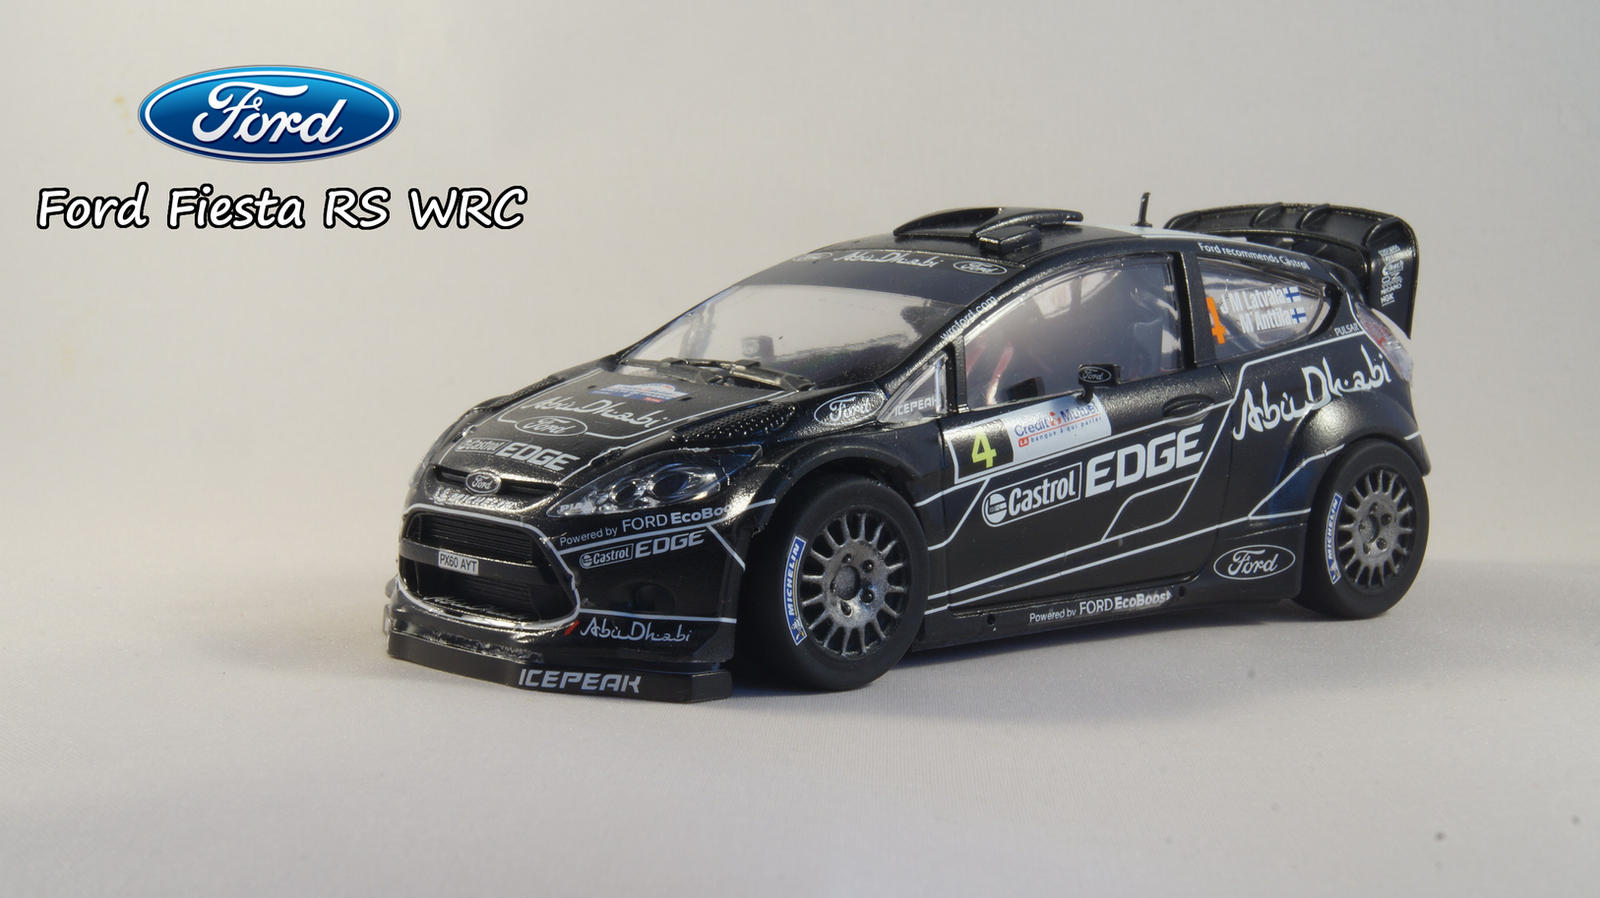 Ford Fiesta RS WRC by Rodesu on DeviantArt